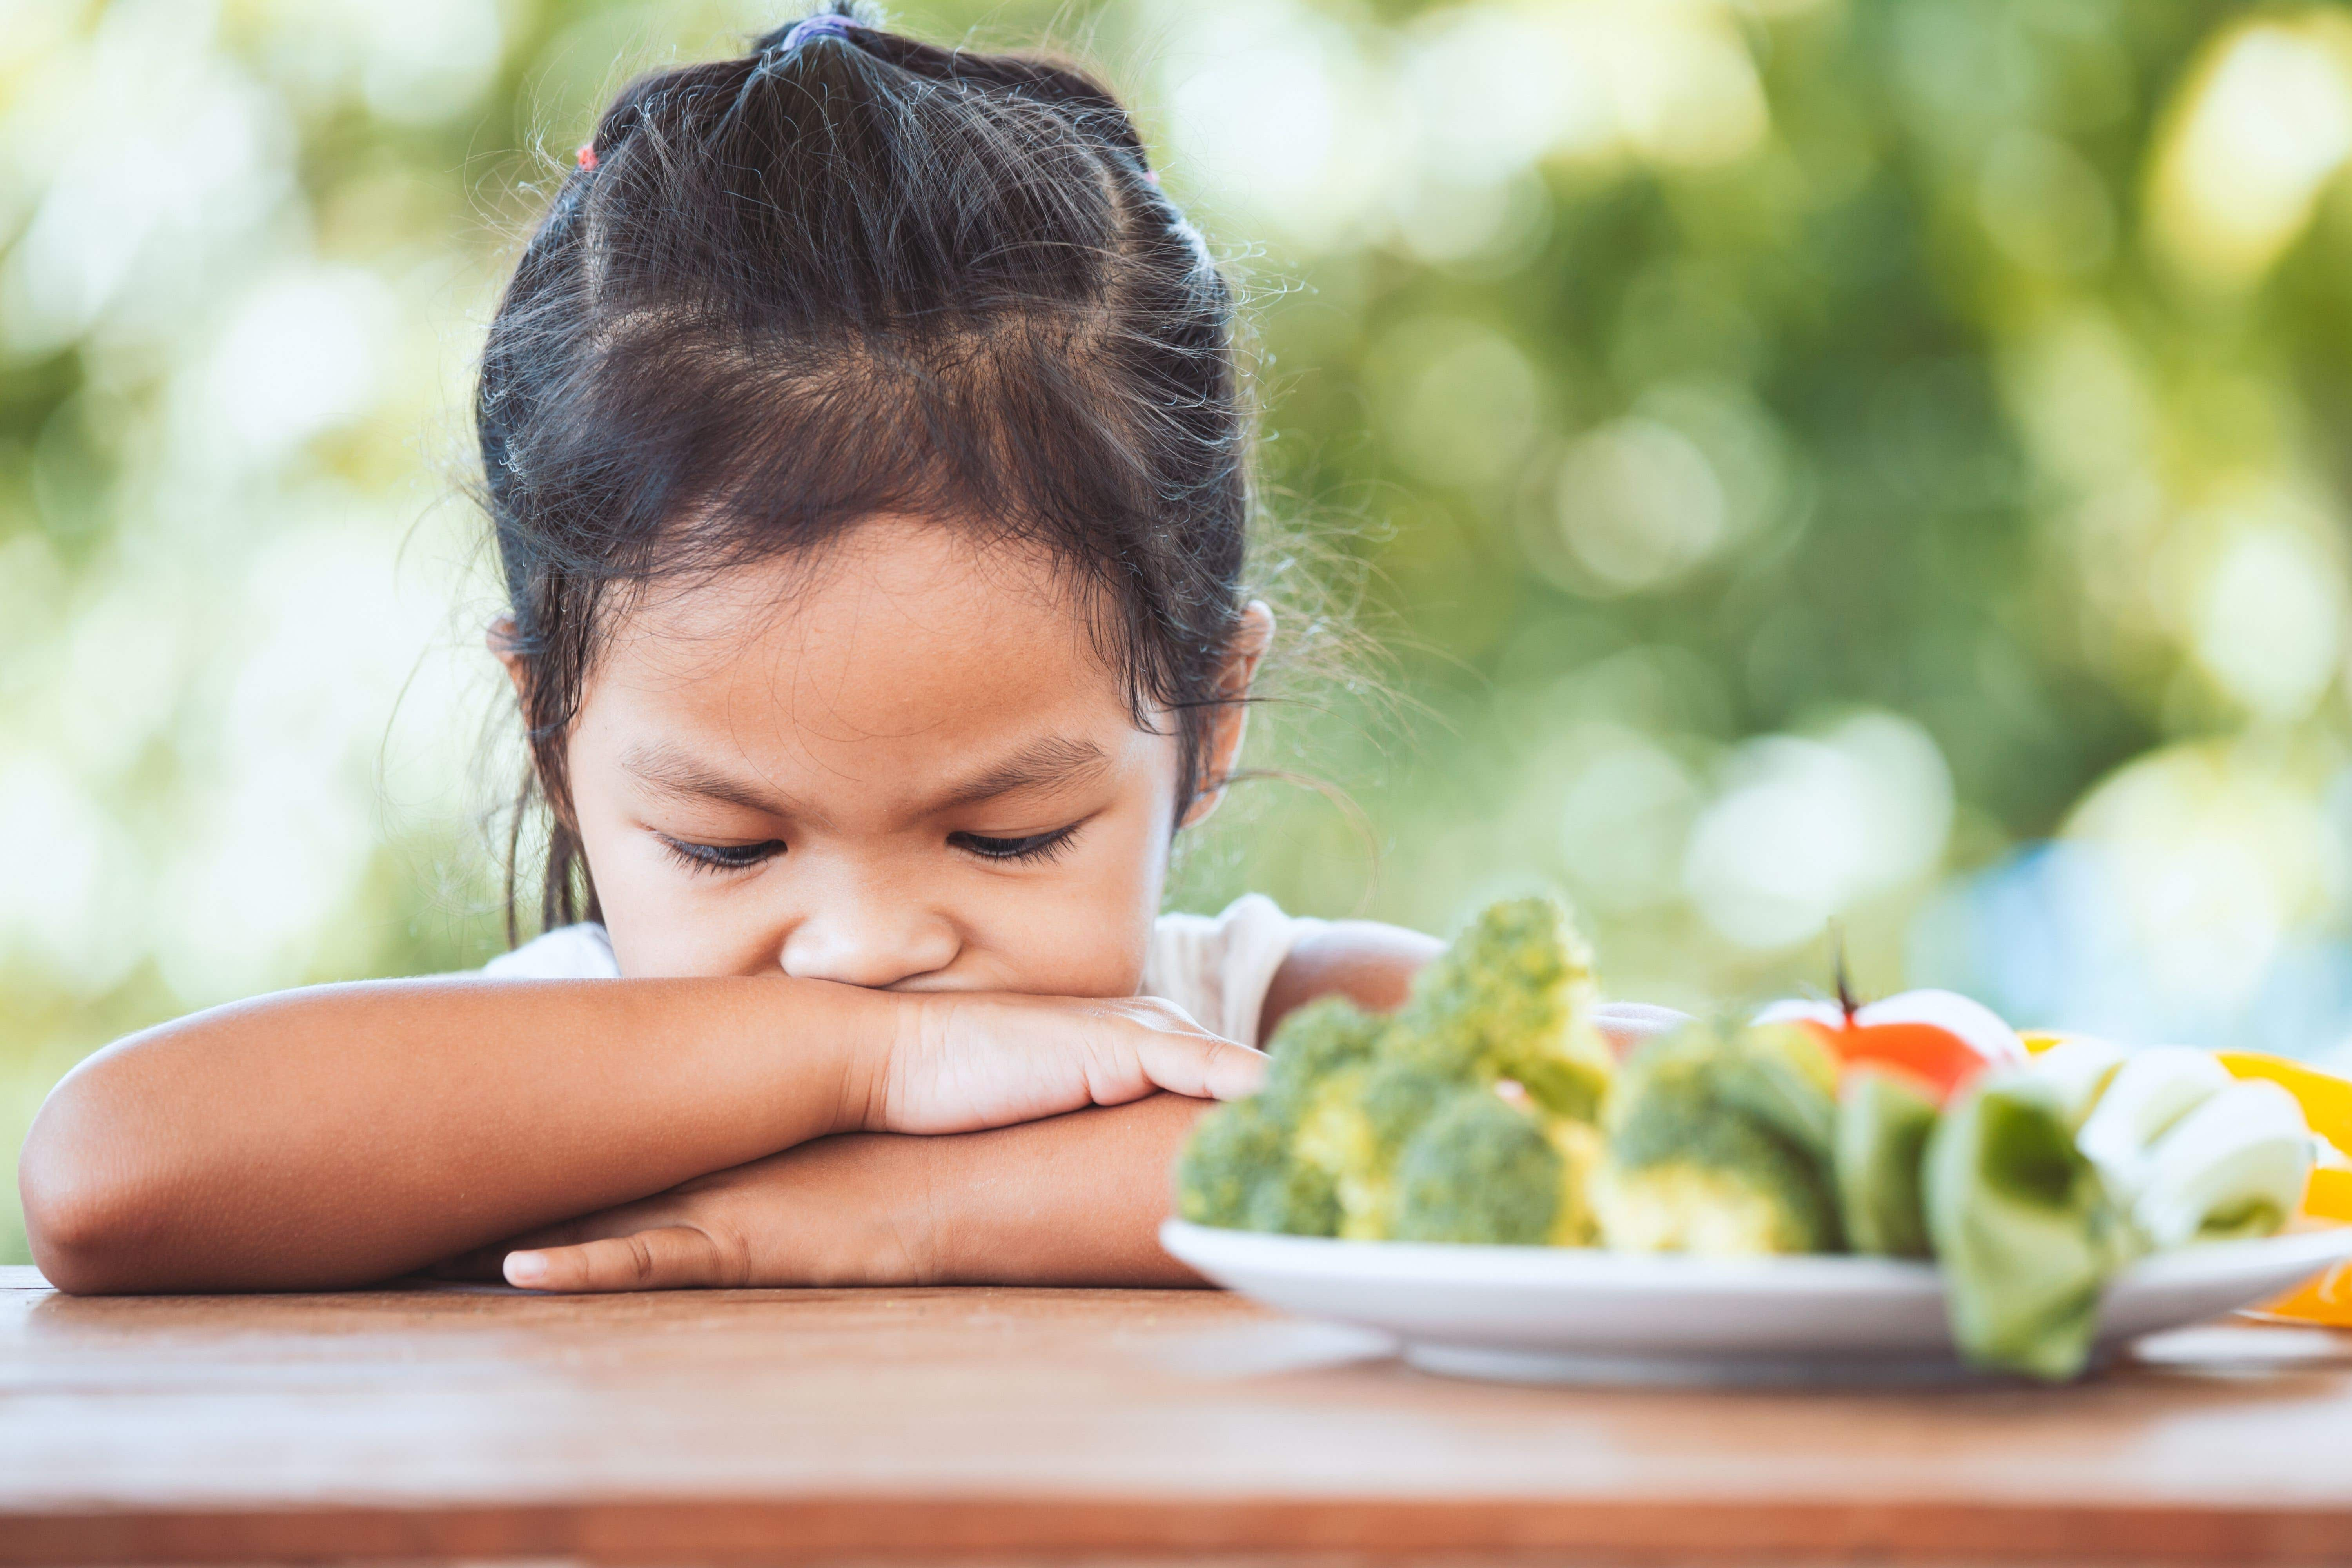 Child pushing away a plate of vegetables